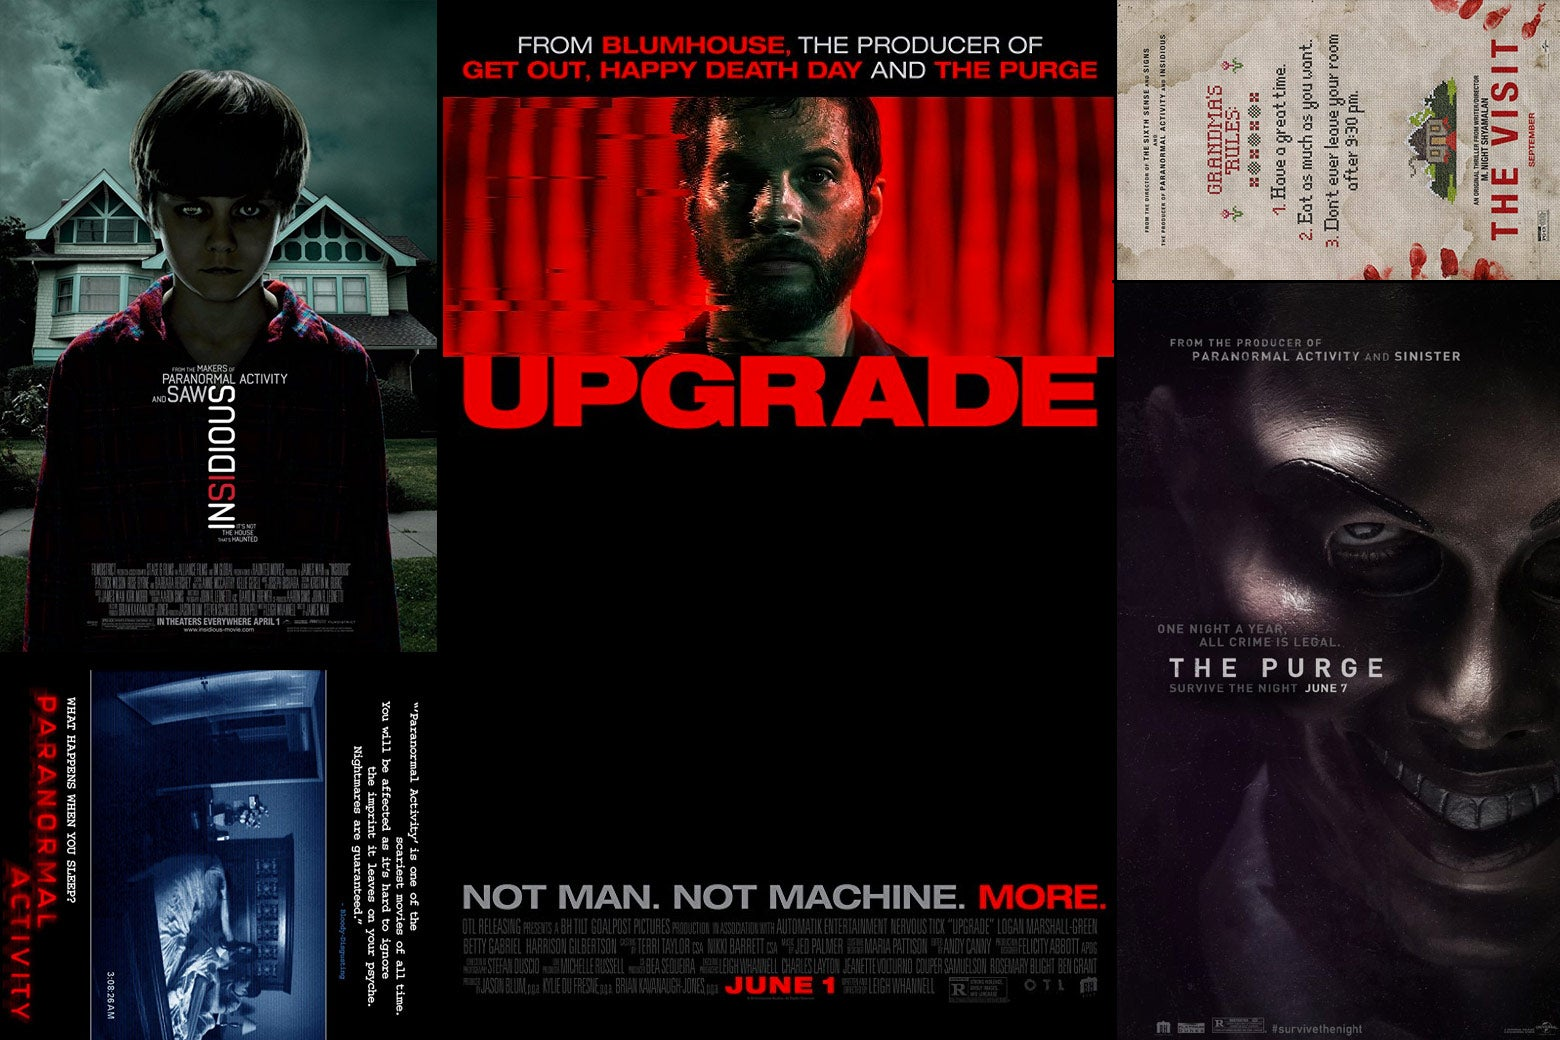 Blumhouse movie posters, including Paranormal Activity, Insidious, Upgrade, The Visit, and The Purge.